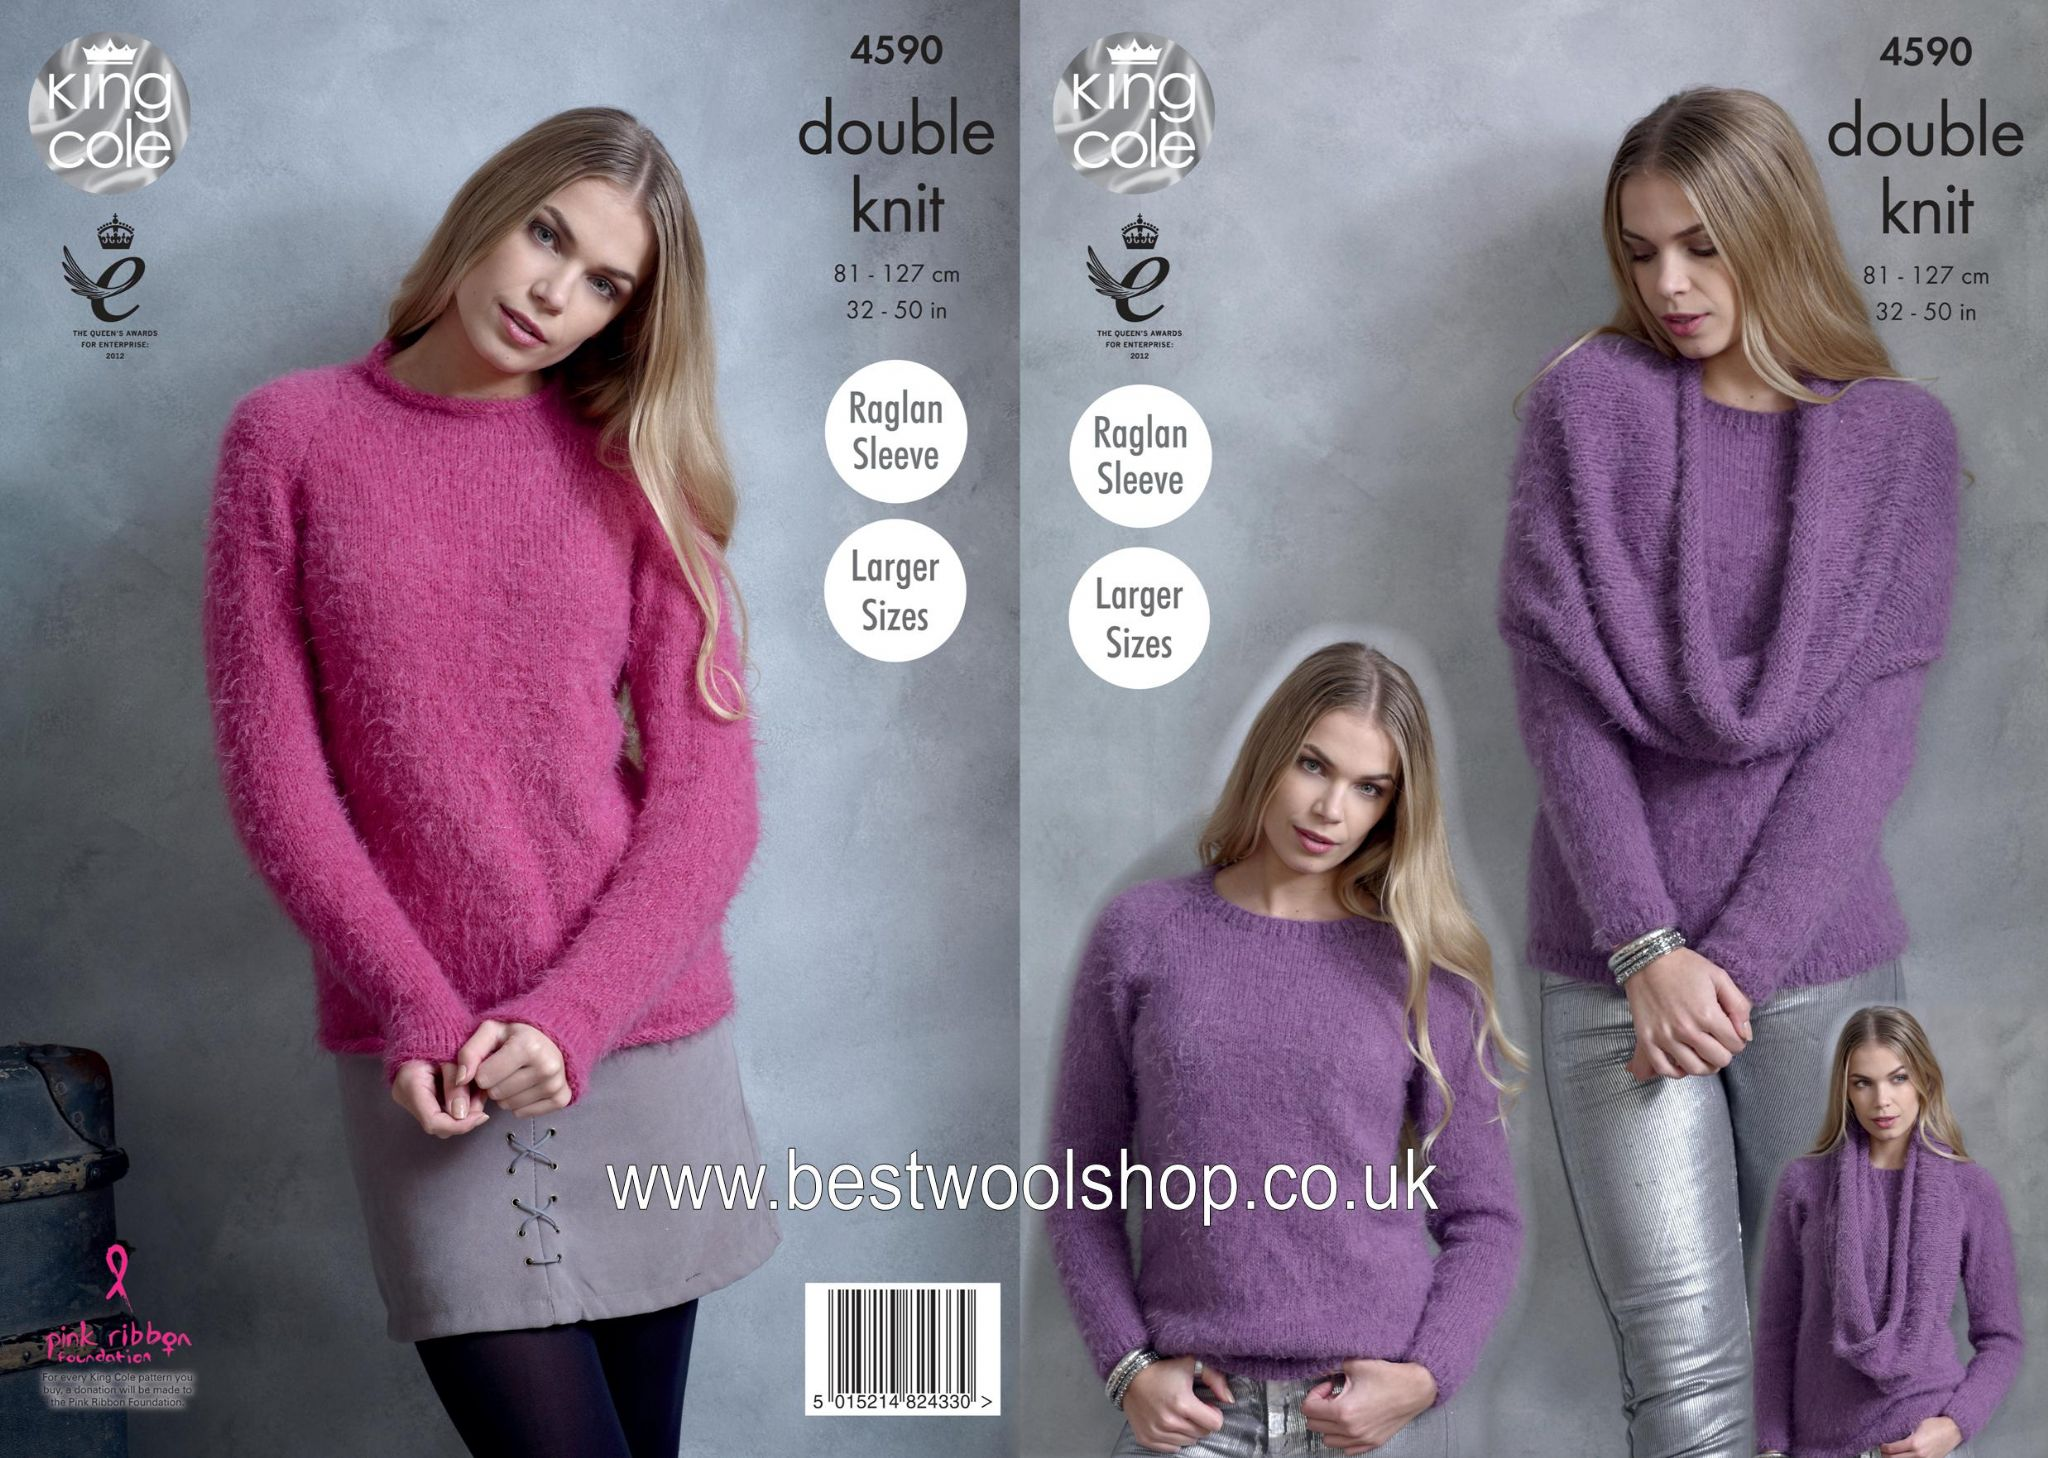 4590 - KING COLE EMBRACE DK PONCHO SNOOD ROUND & HIGH NECK SWEATER ...